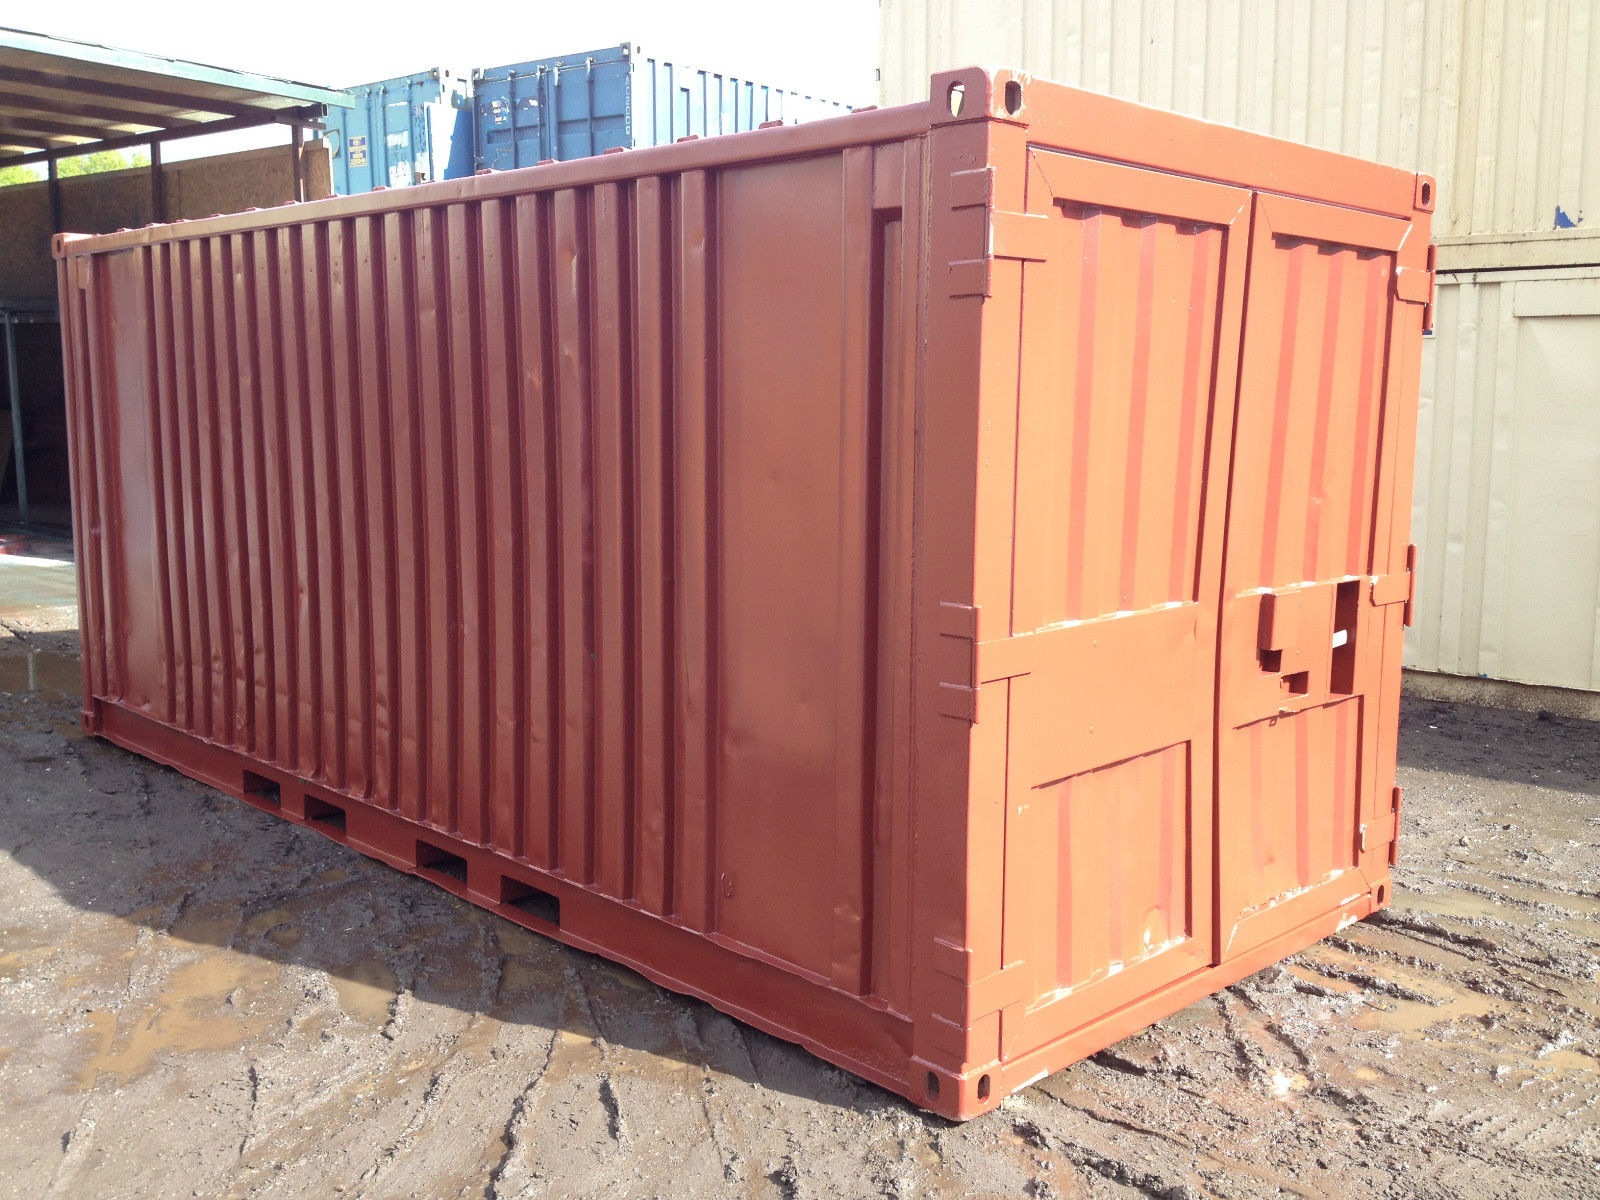 20ft x 8ft Red Used Shipping Container   www ...